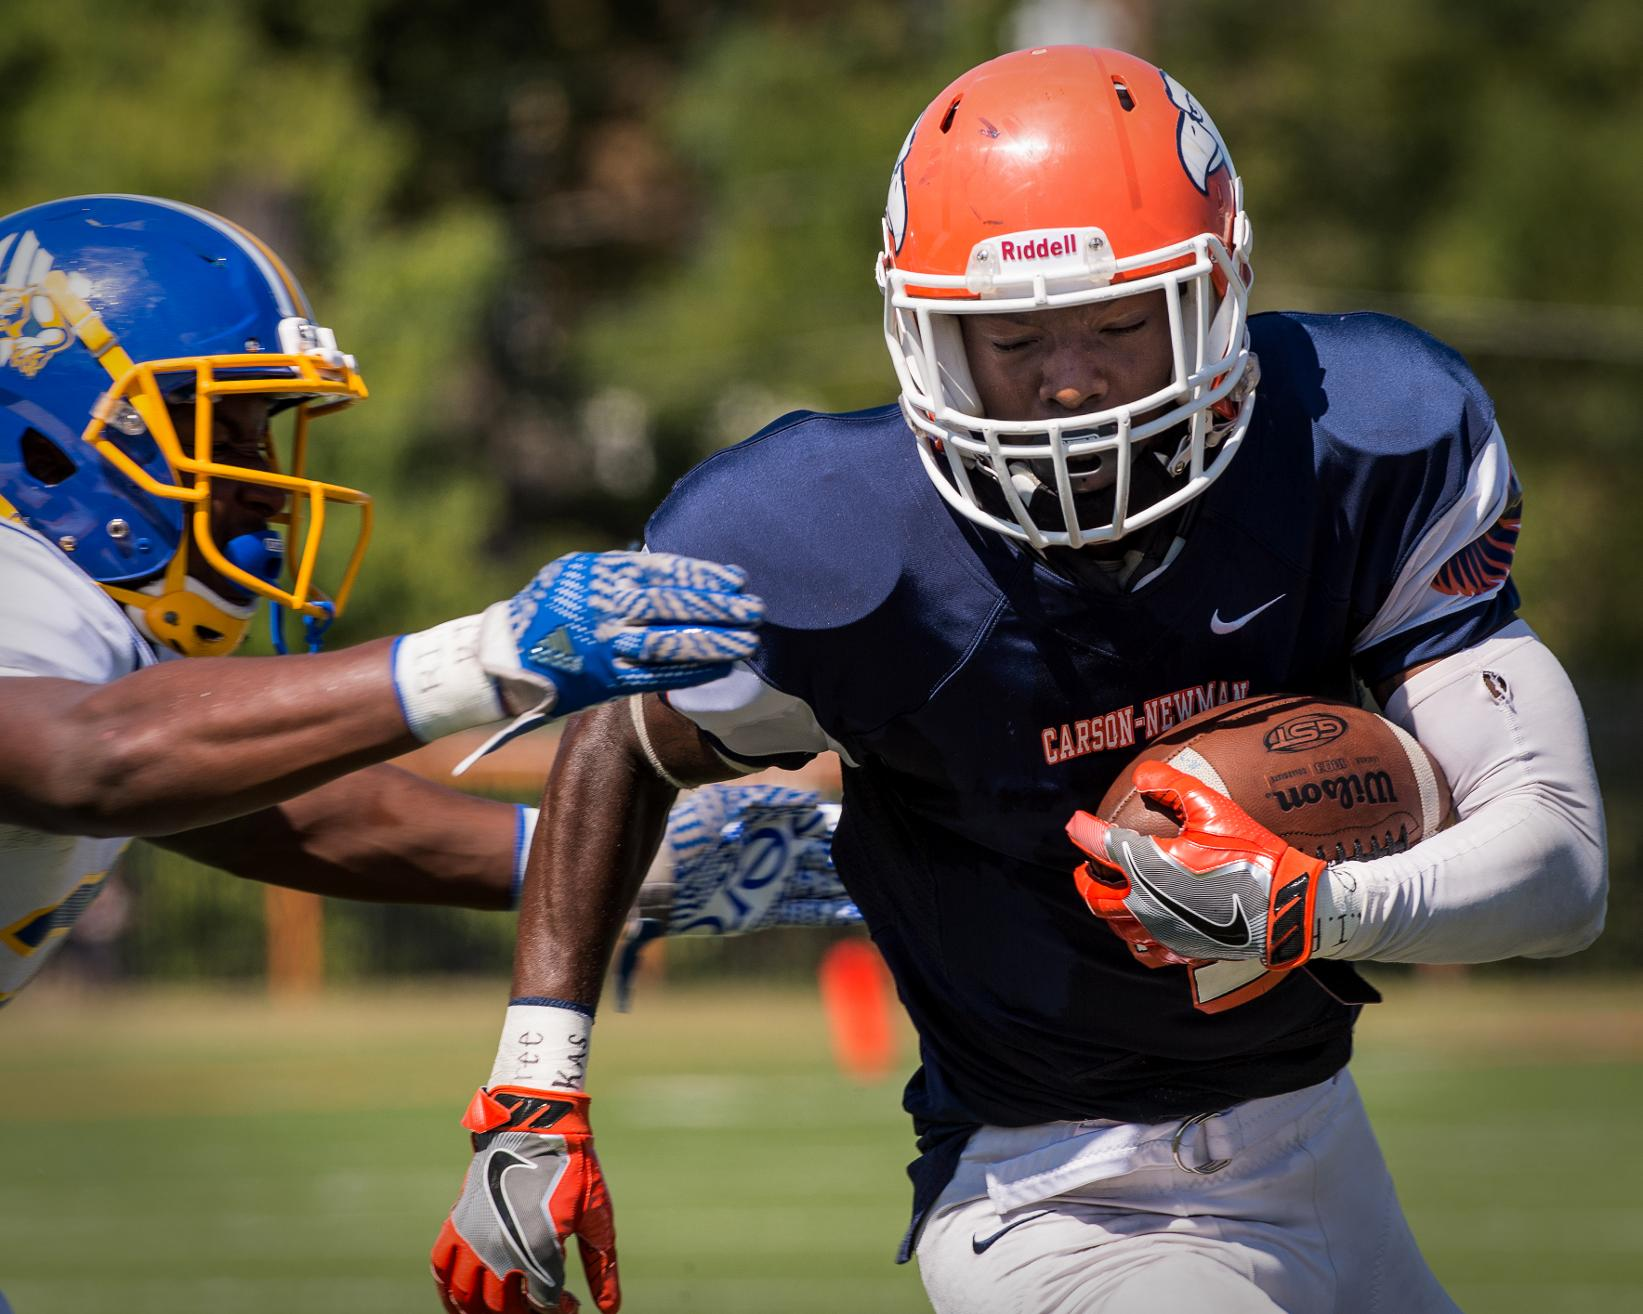 Second half surge powers Carson-Newman past Mars Hill